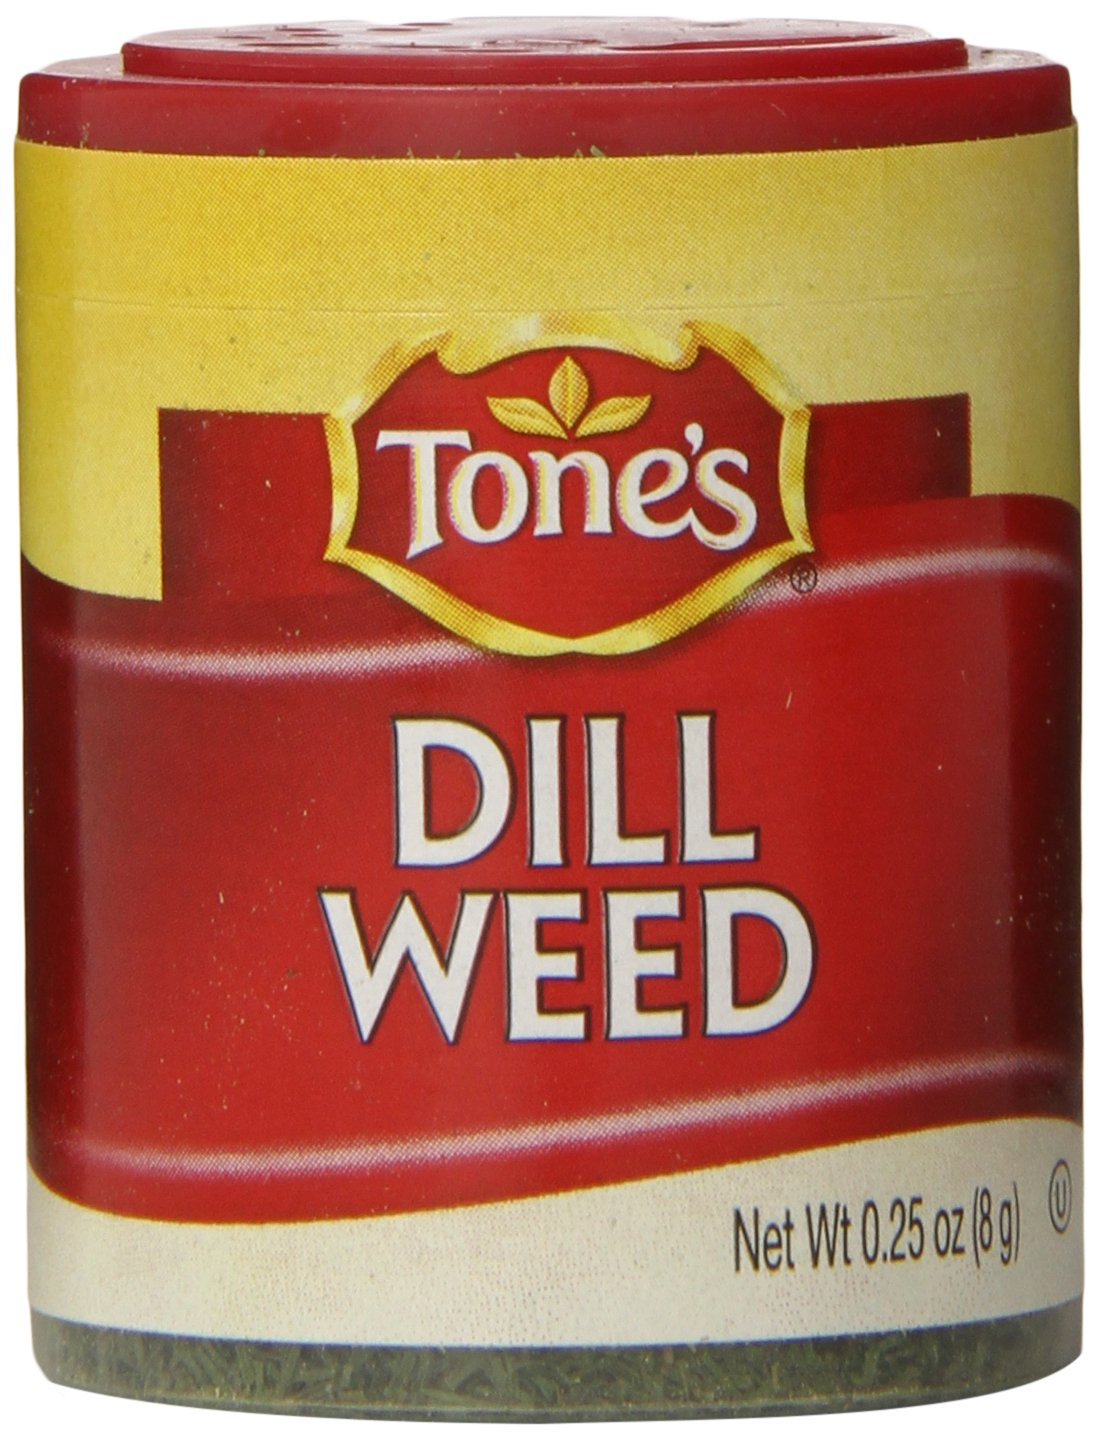 Tone's Mini's Dill Weed, 0.25 Ounce (Pack of 6)